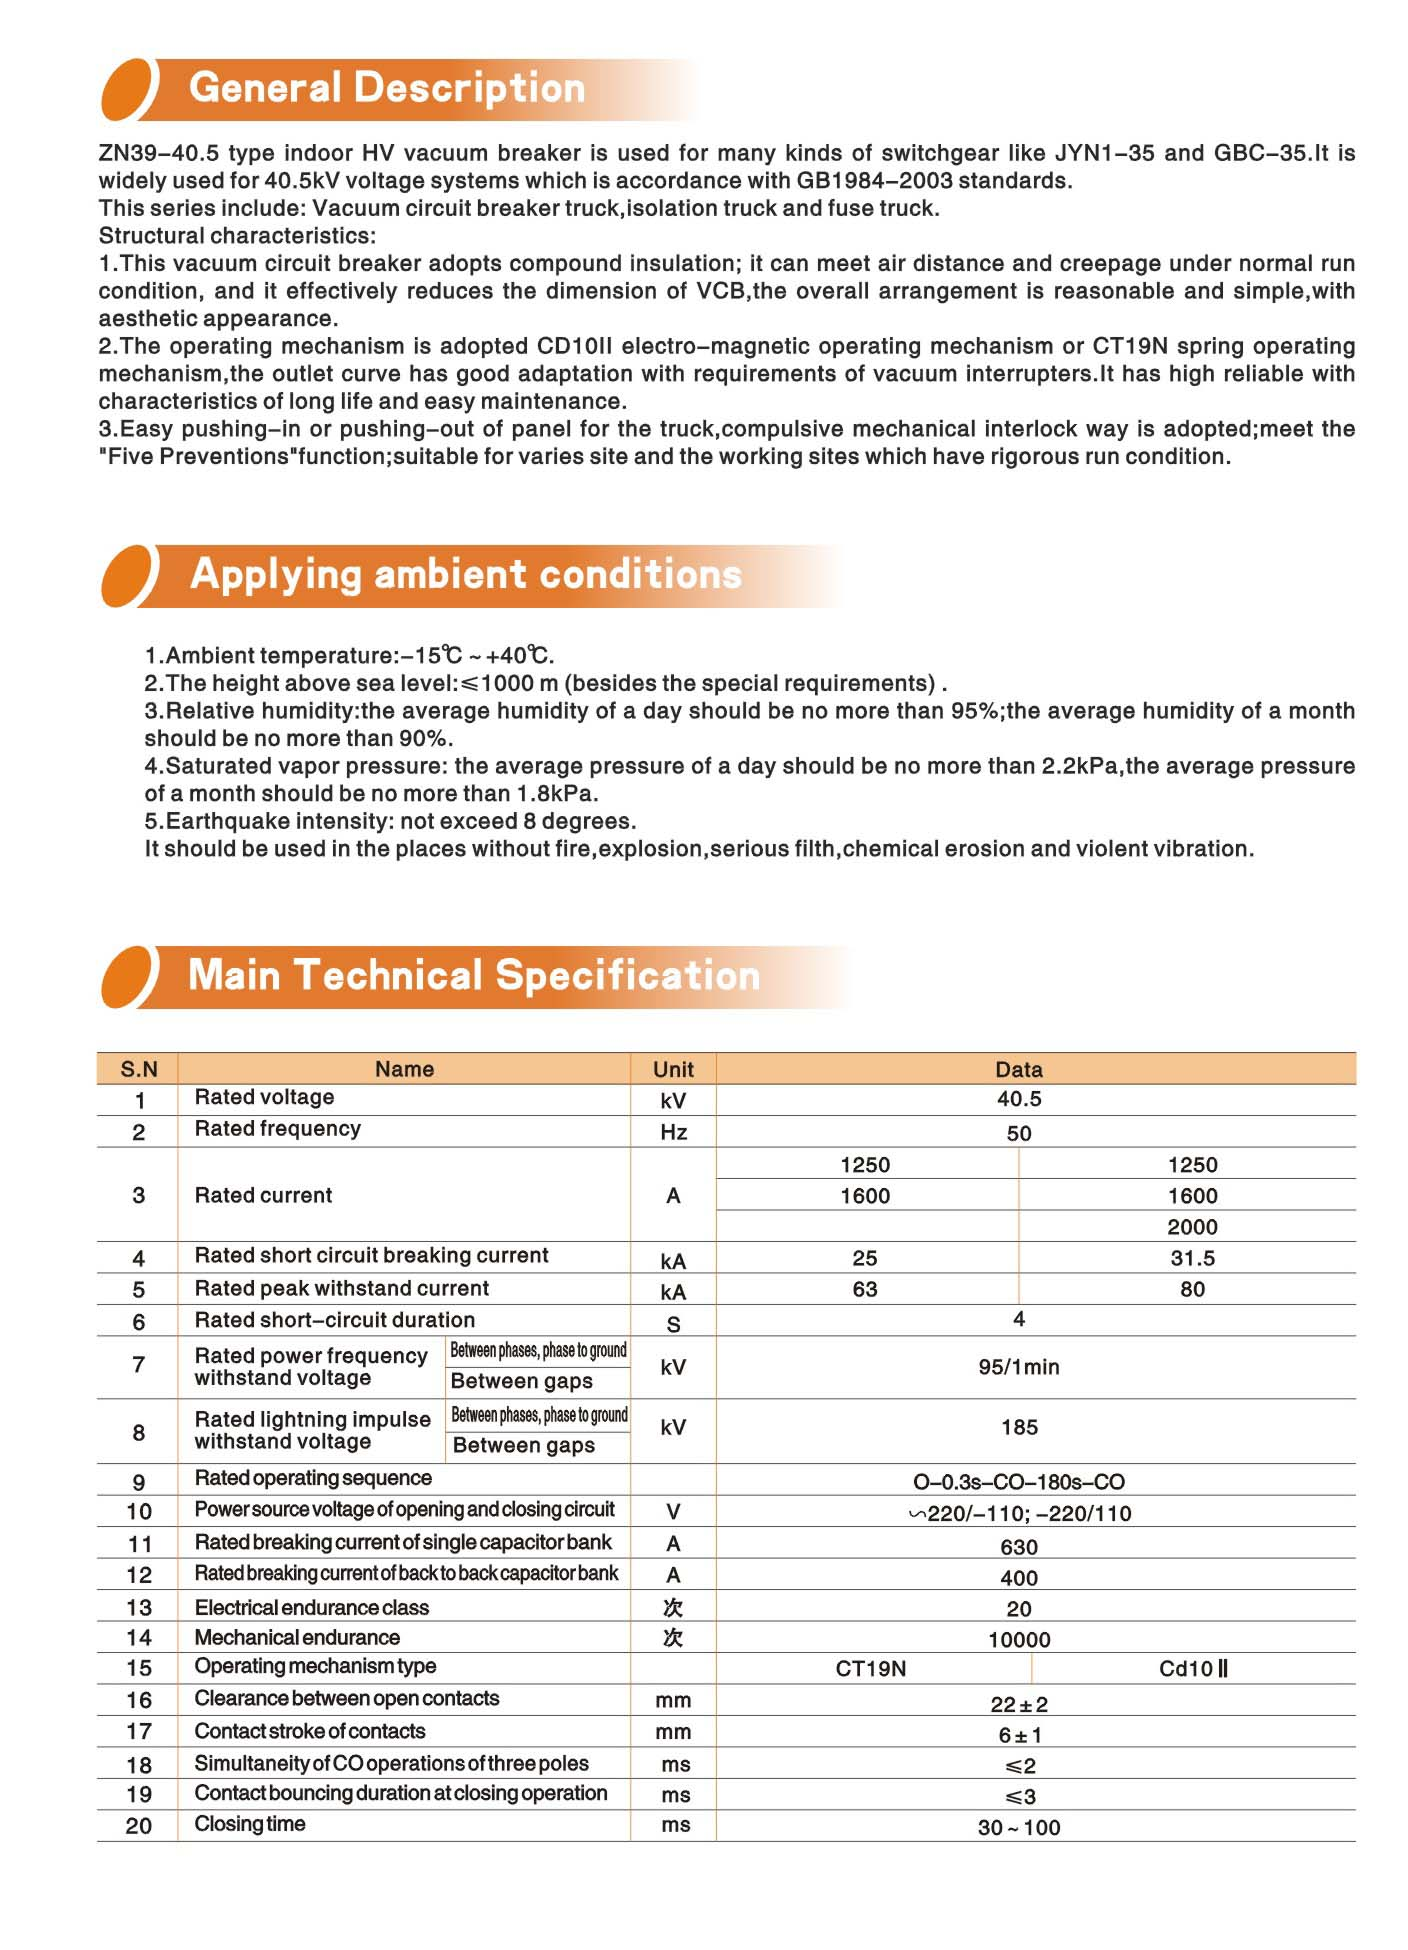 ZN39-40.5 type VCB Technical Specification